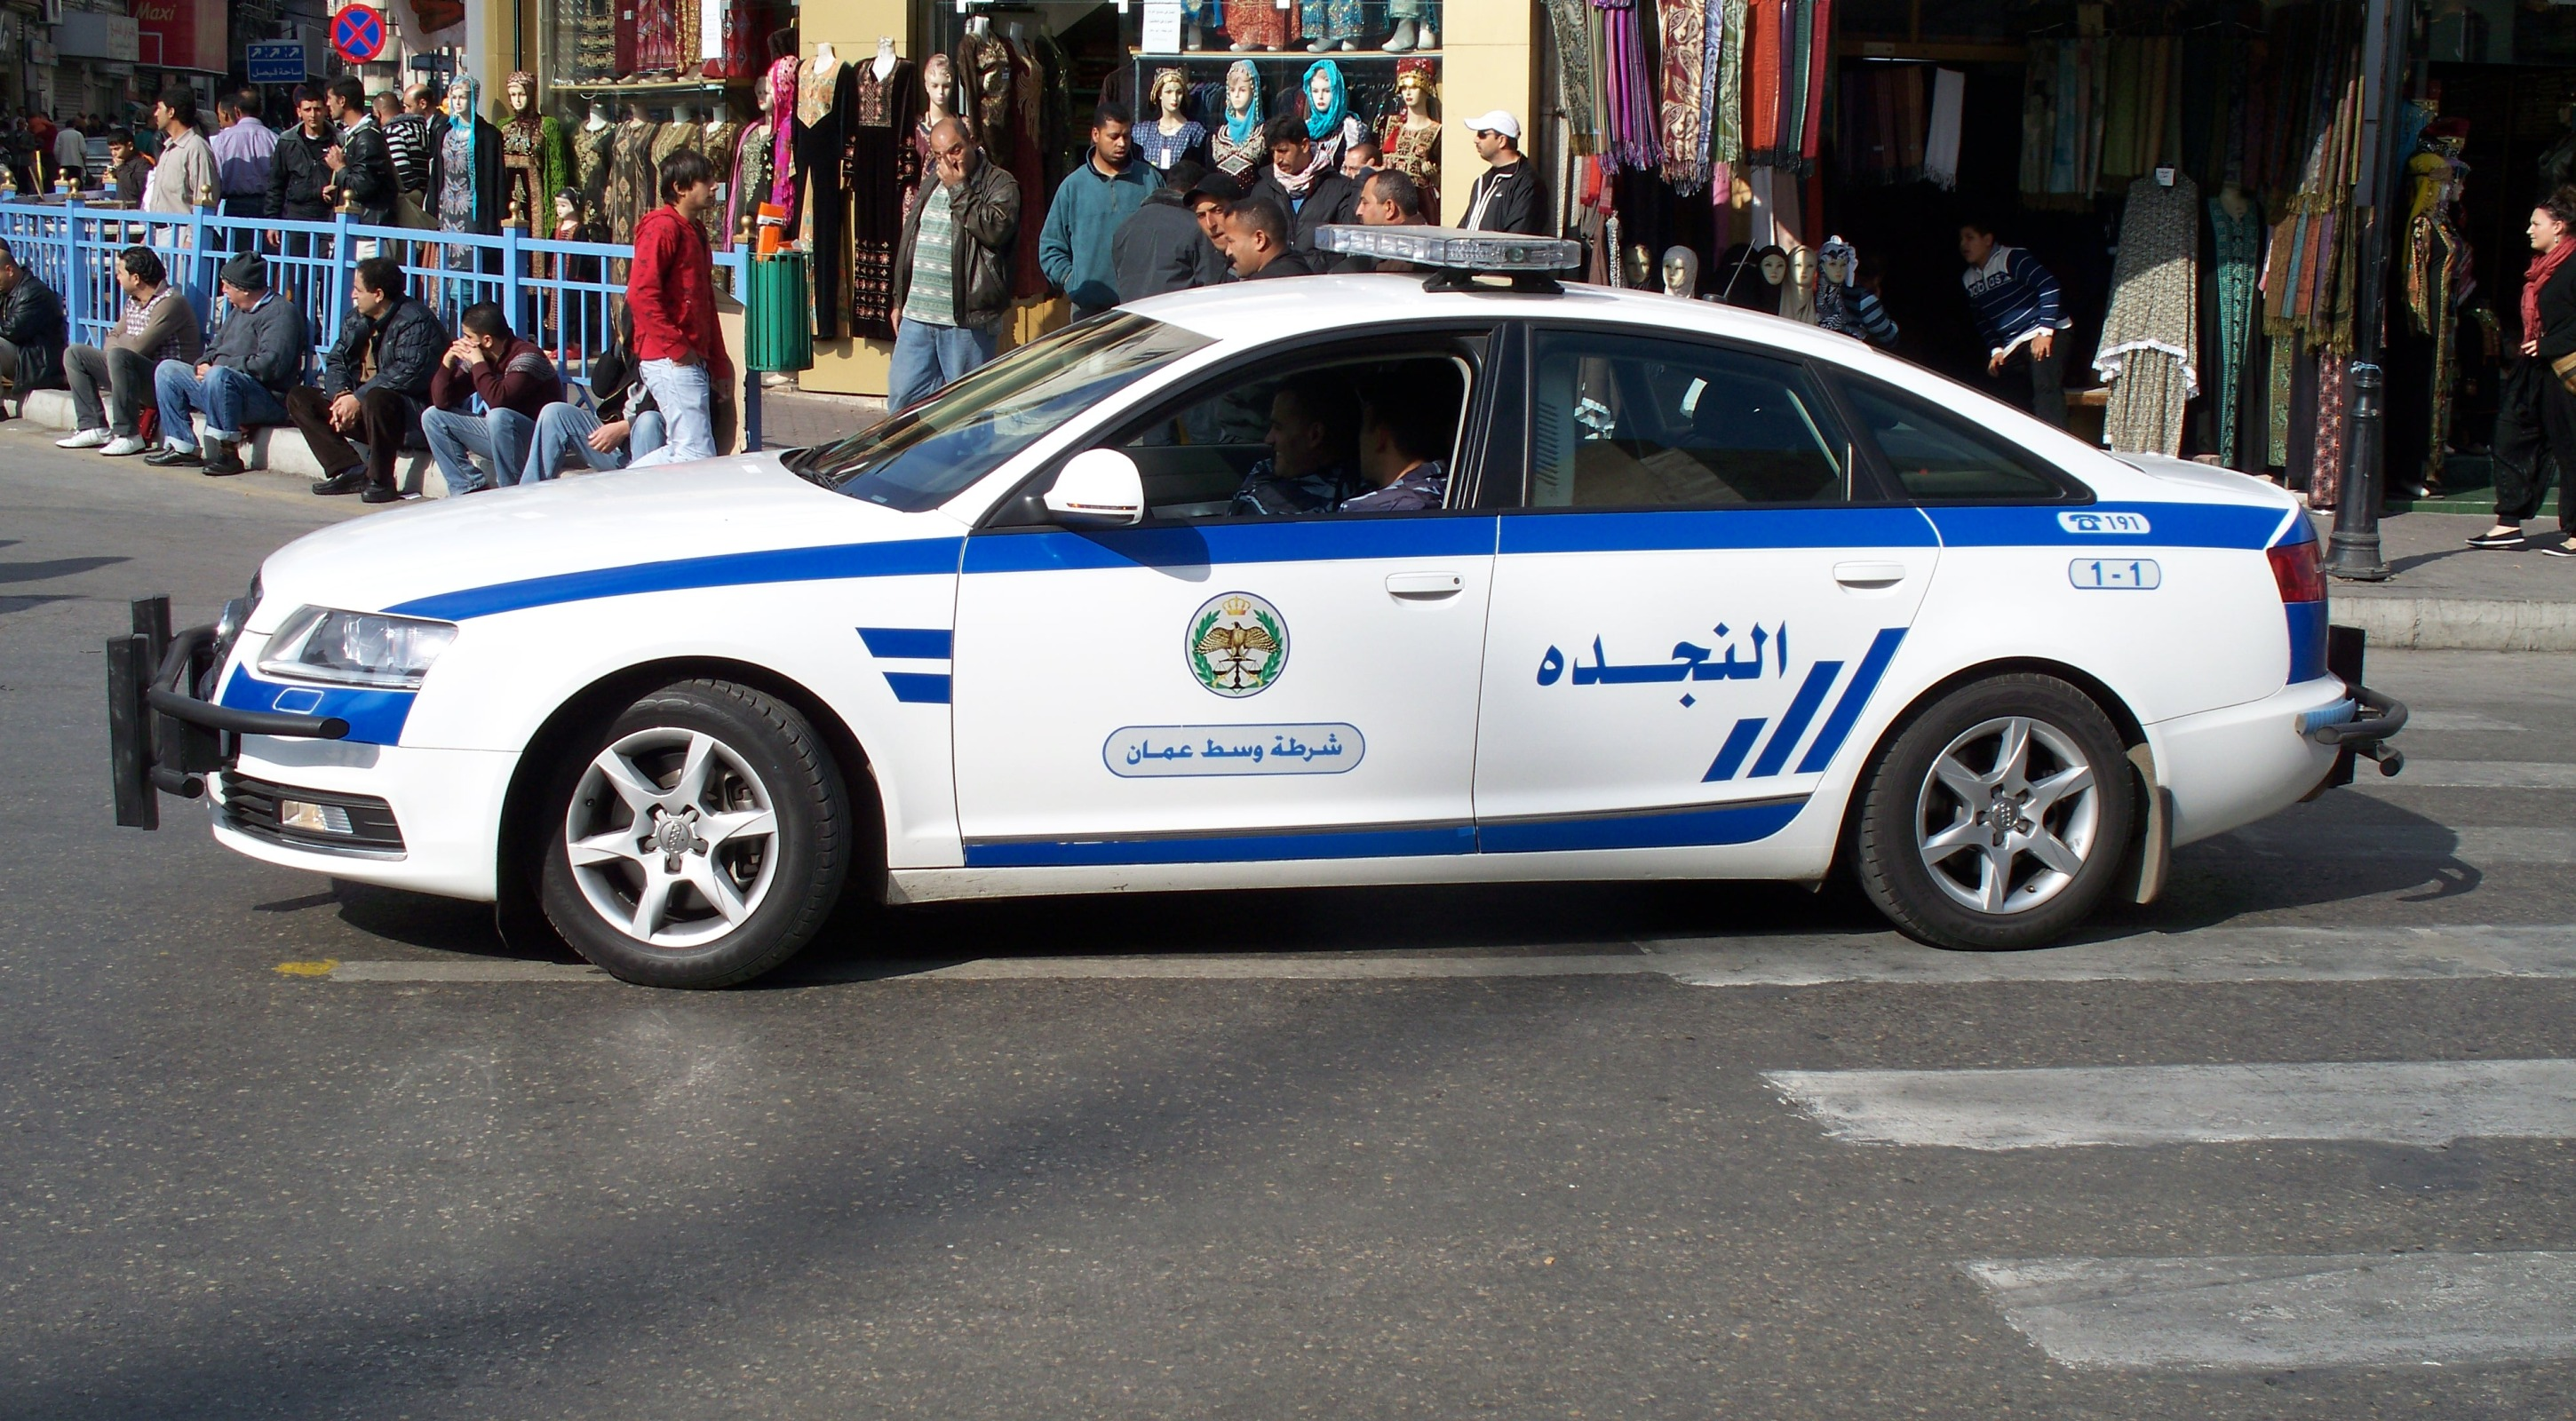 FileJordanian Police Automobile AudiJPG Wikimedia Commons - Audi car jordan